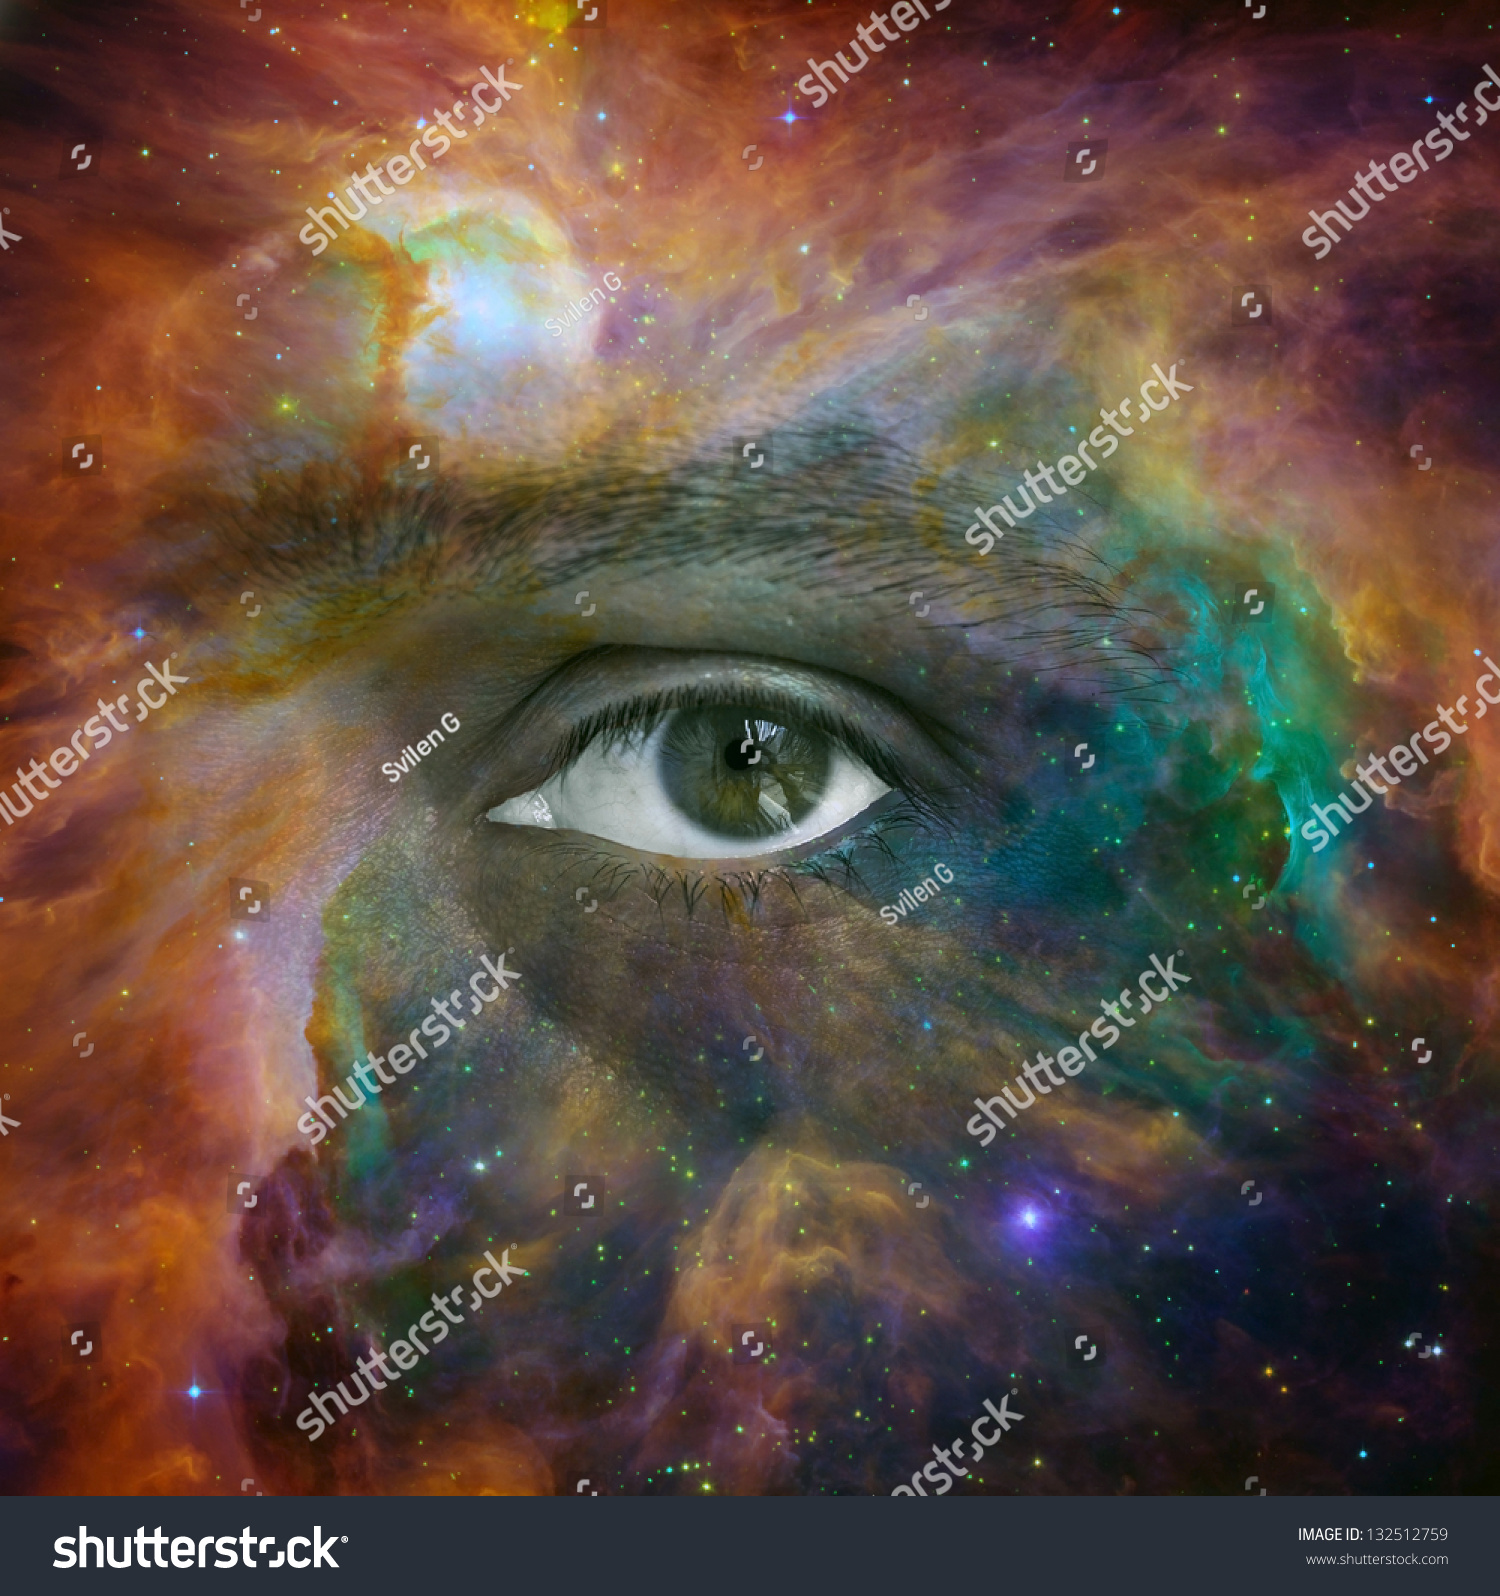 Conceptual Image Of Human Eye Looking Through A Nebula In ...